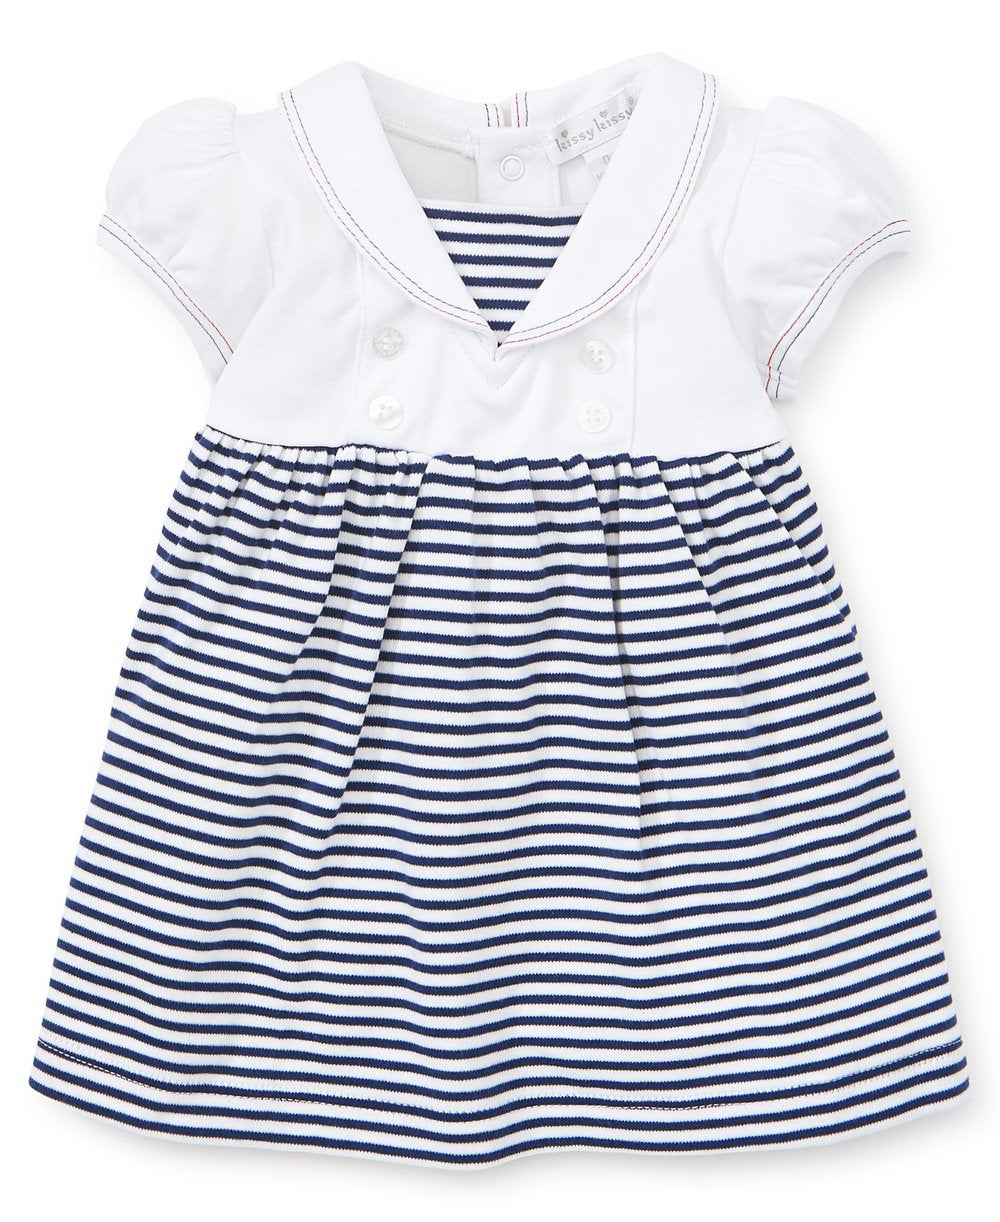 Summer Sails Stripe Dress Set